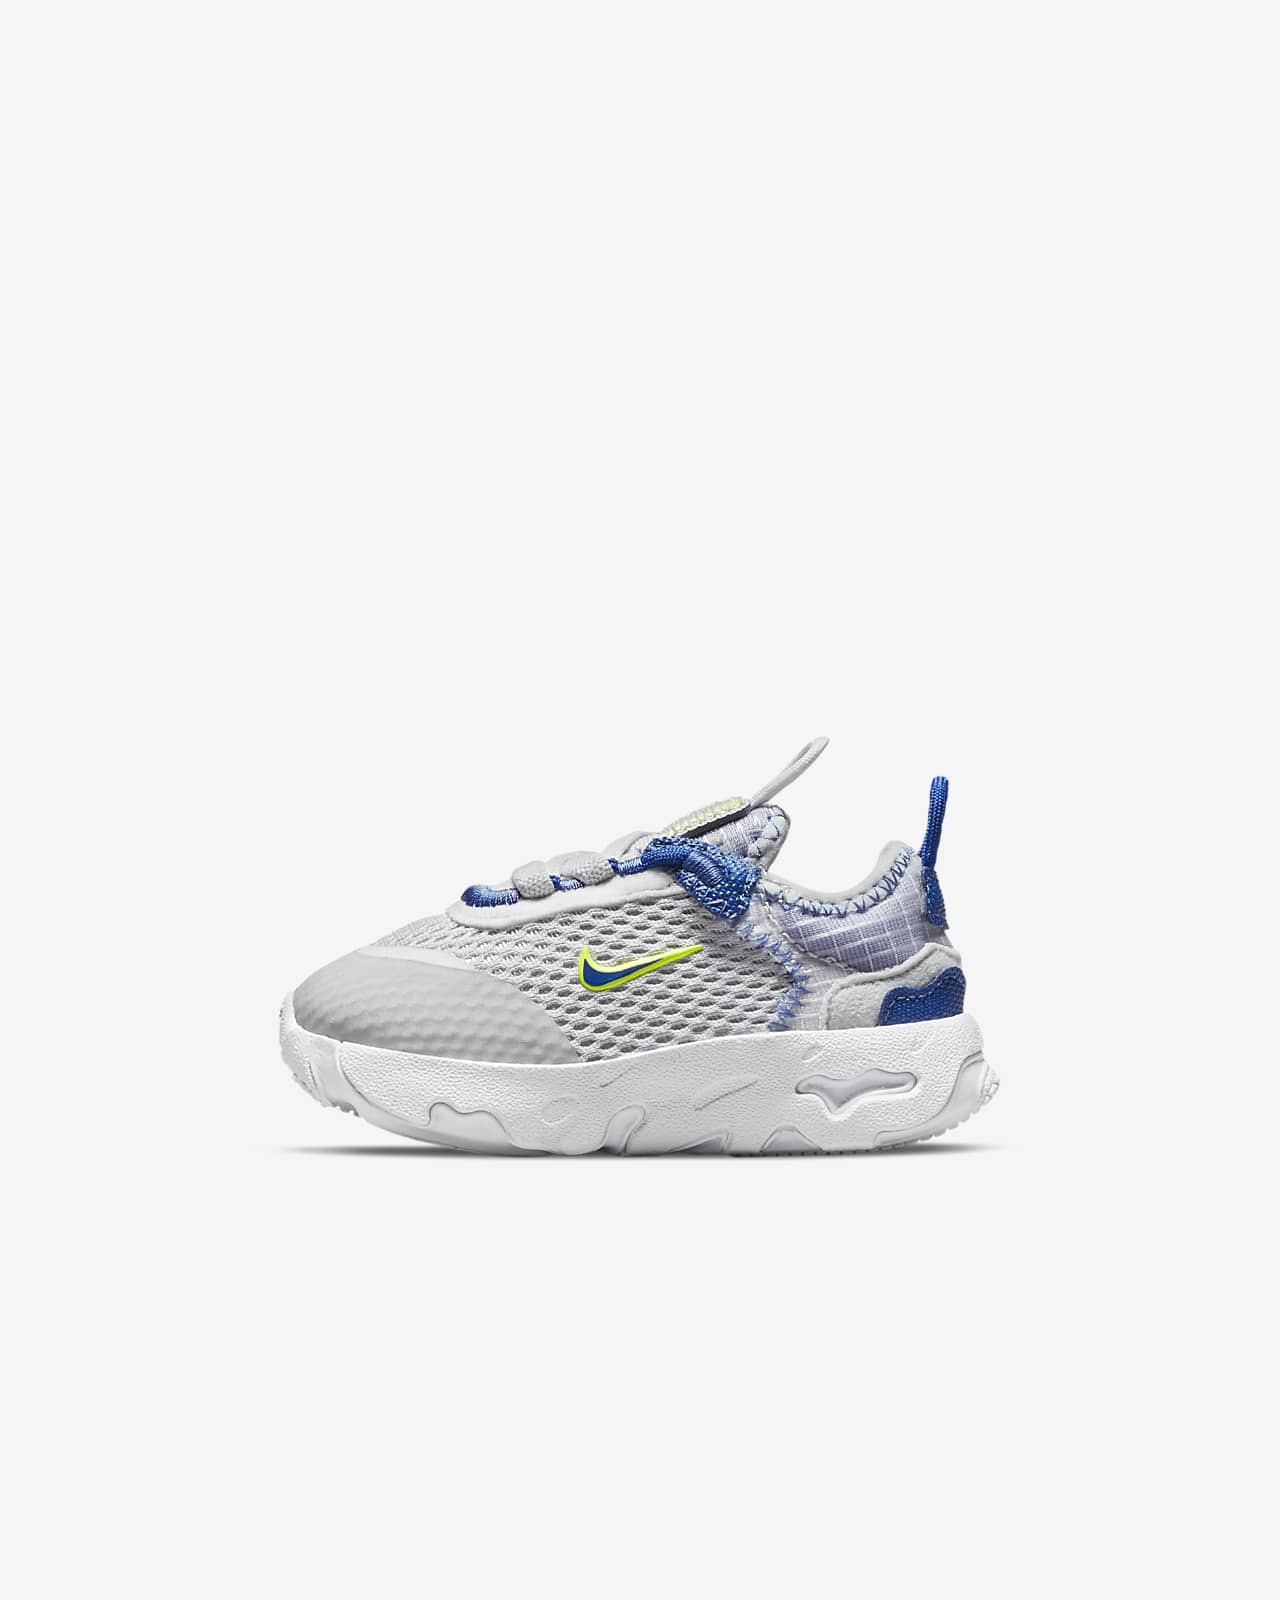 Nike RT Live Baby/Toddler Shoes